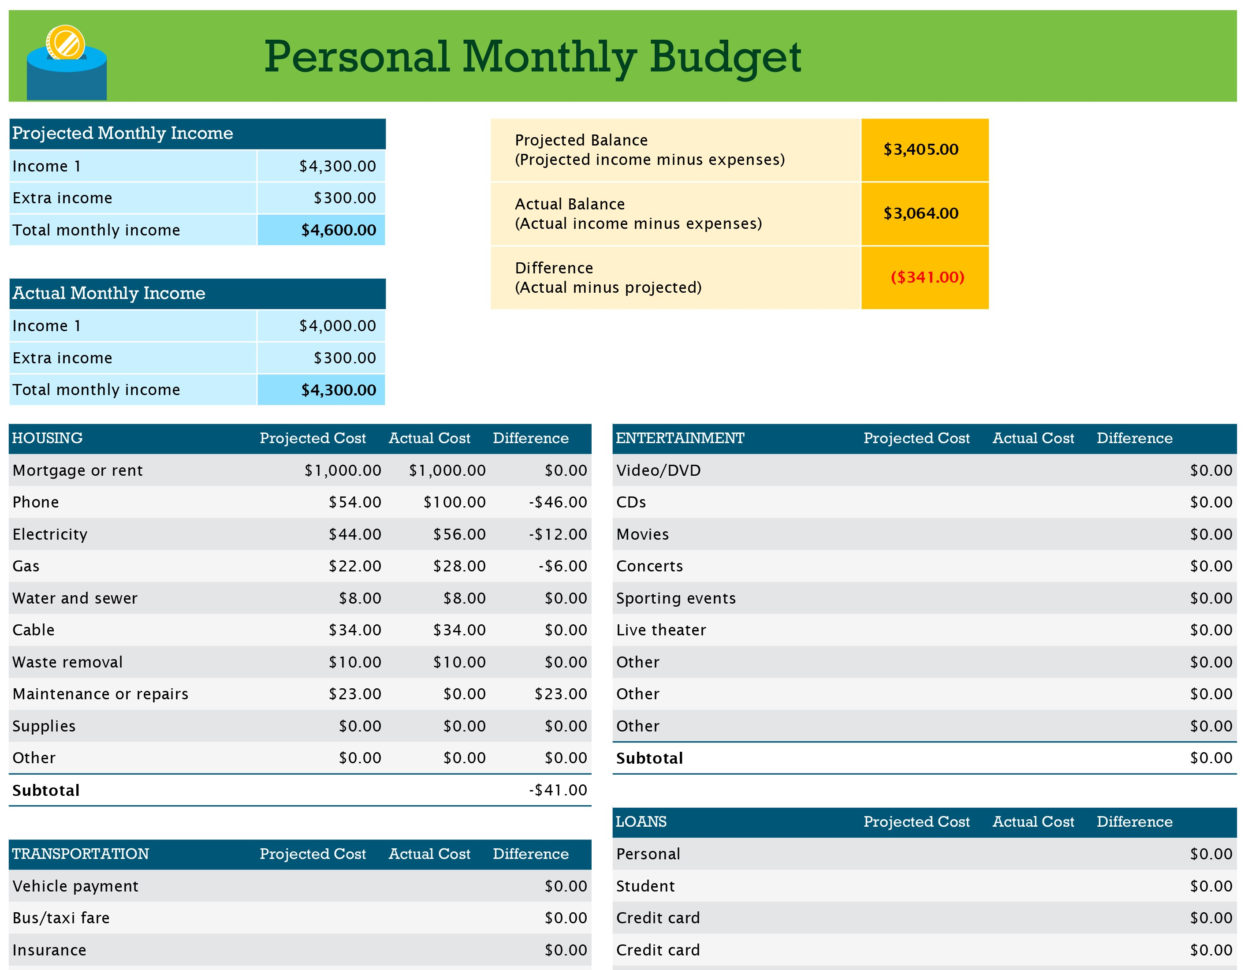 Personal Monthly Budget With Monthly Budget Spreadsheet